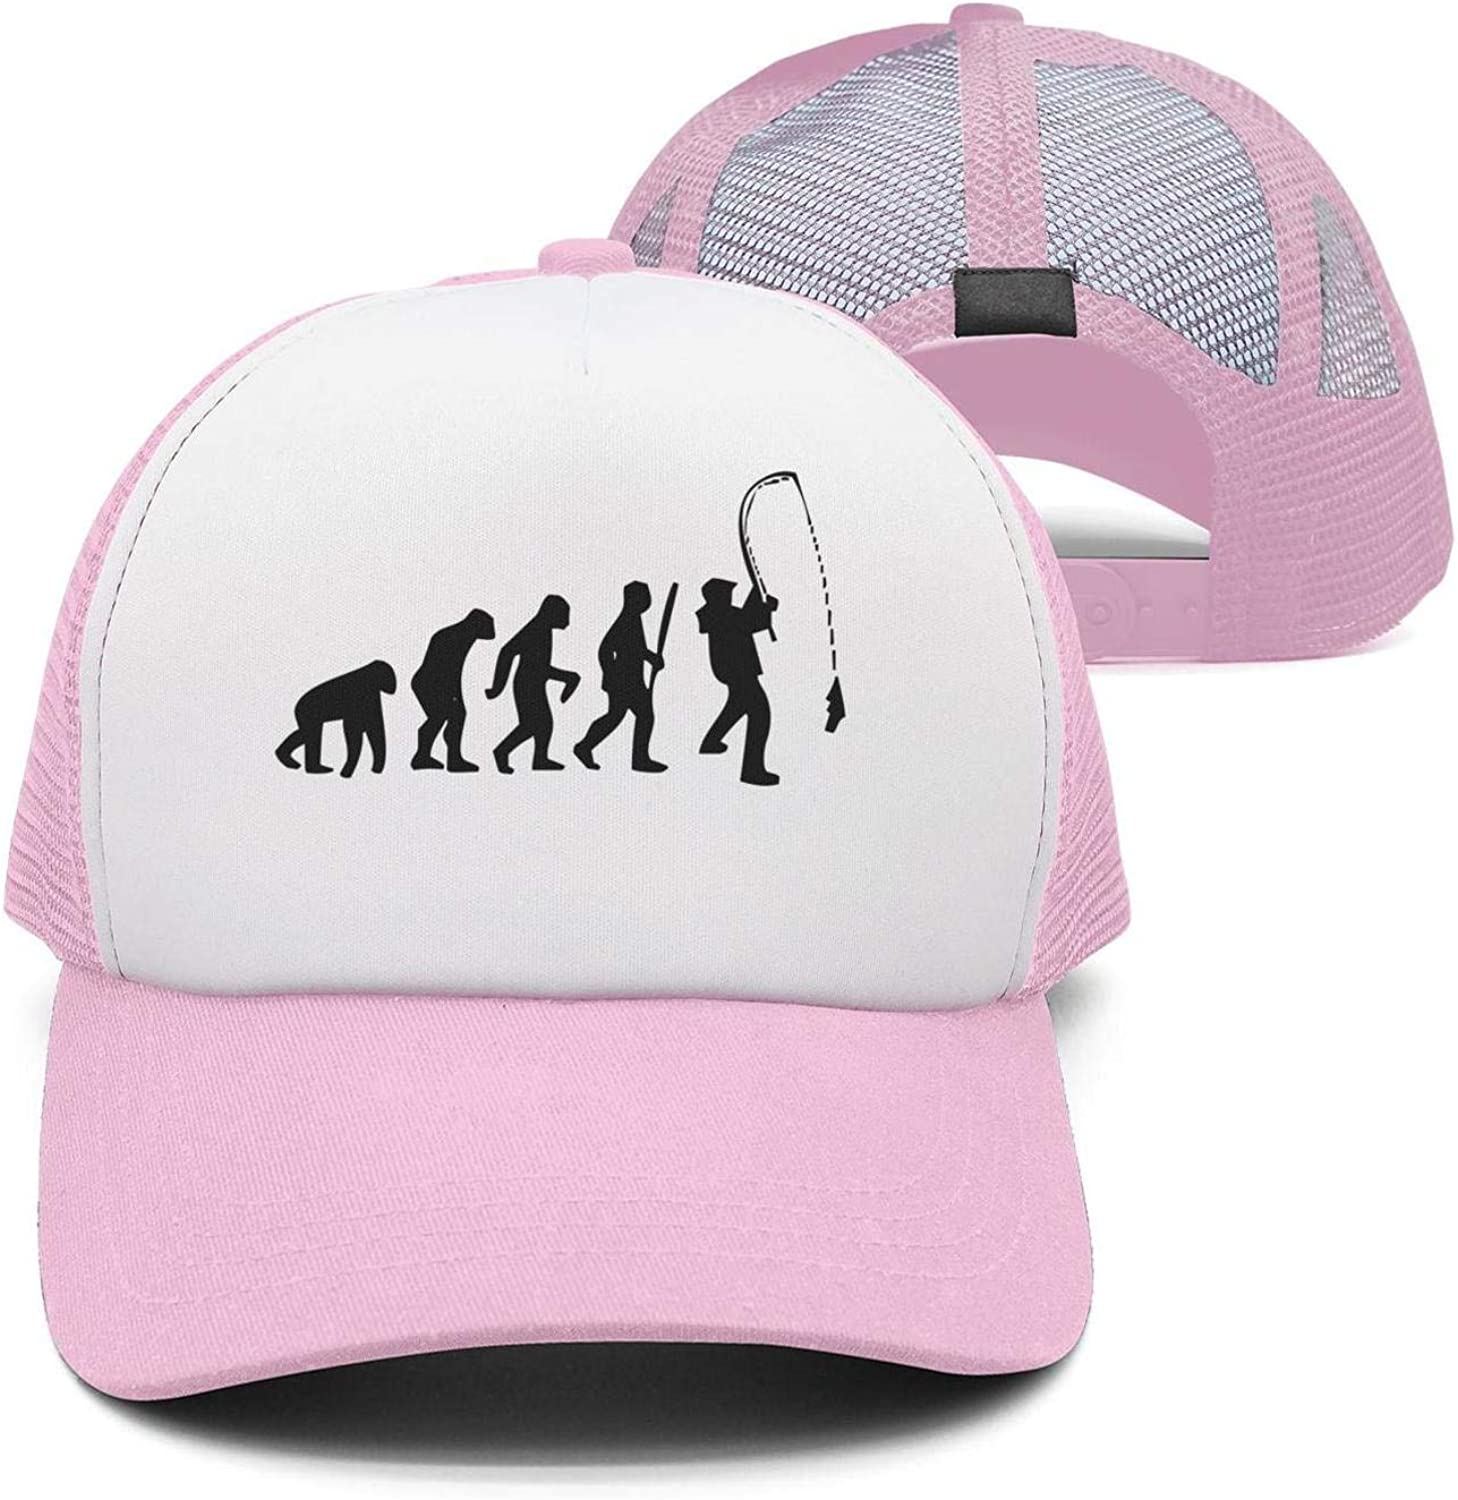 Sugar Skull Beard Sized Baseball Caps For Adults Unique Great For Activities Hiking Trucker Hats